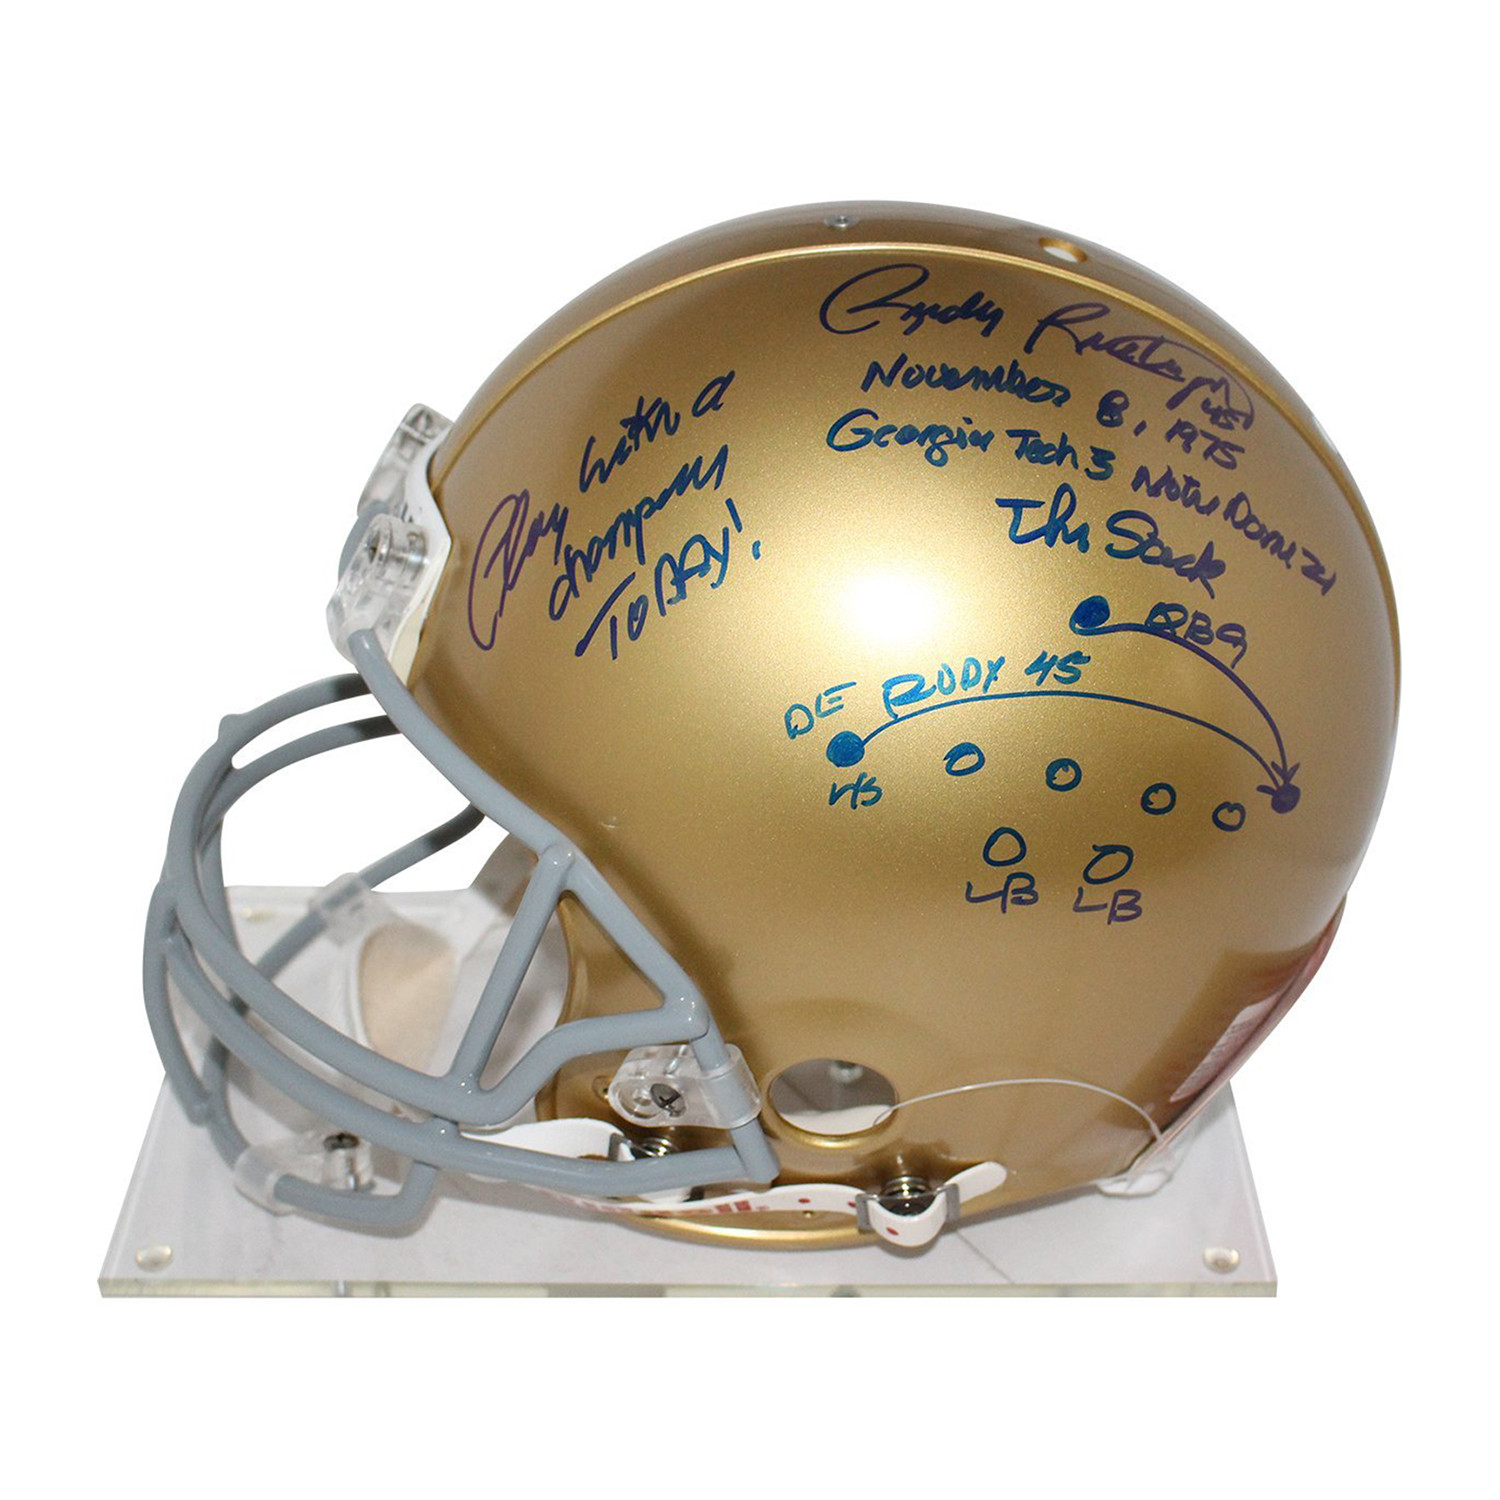 Lou Holtz Rudy Ruettiger Signed Notre Dame Authentic Helmet